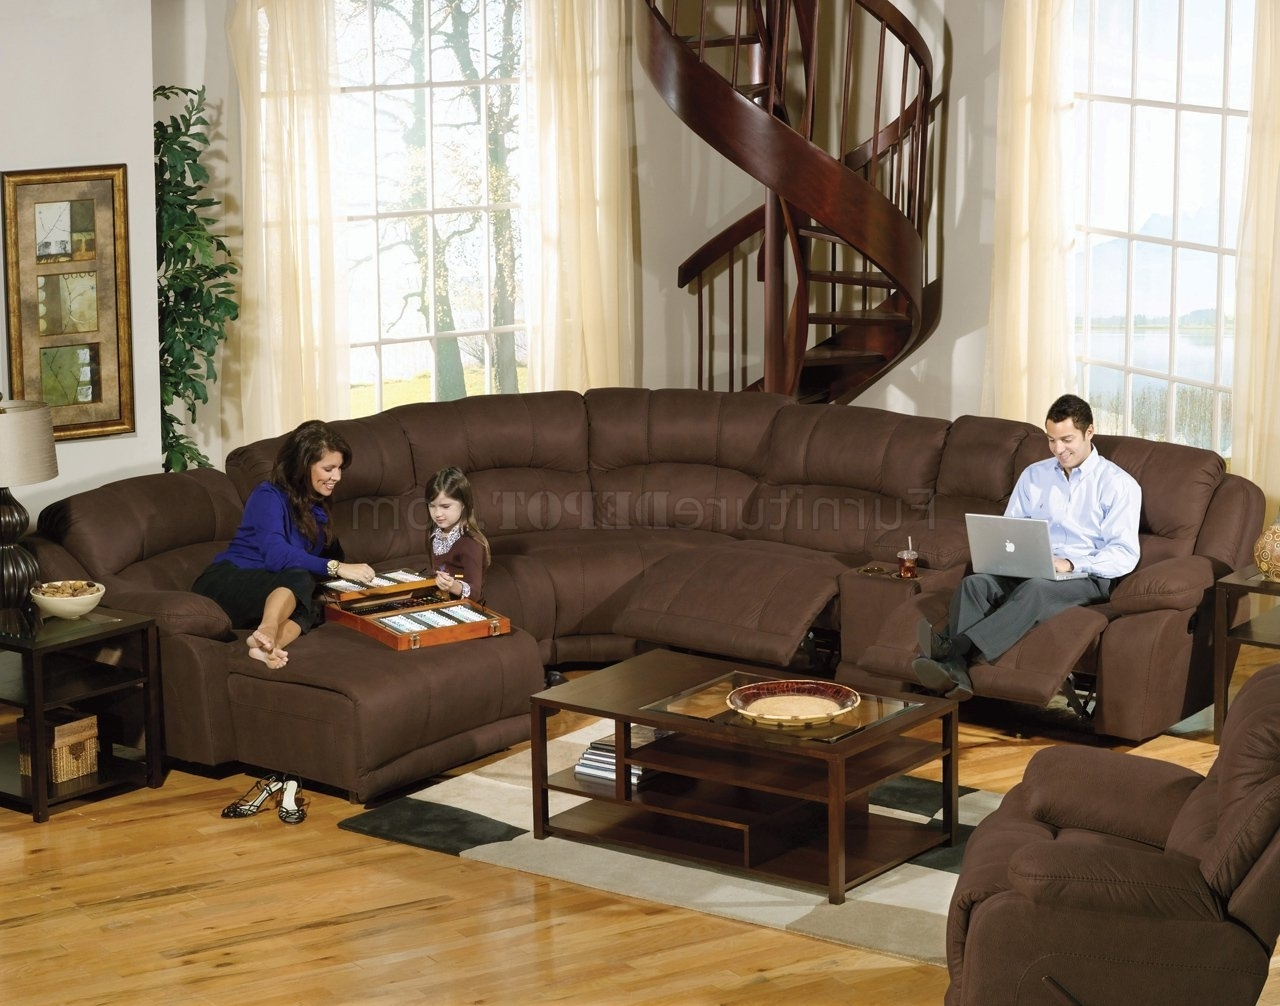 Furniture : Dark Green Leather Sofa And Loveseat Leather Sofa Throughout Popular Sectional Sofas At Bad Boy (View 7 of 15)